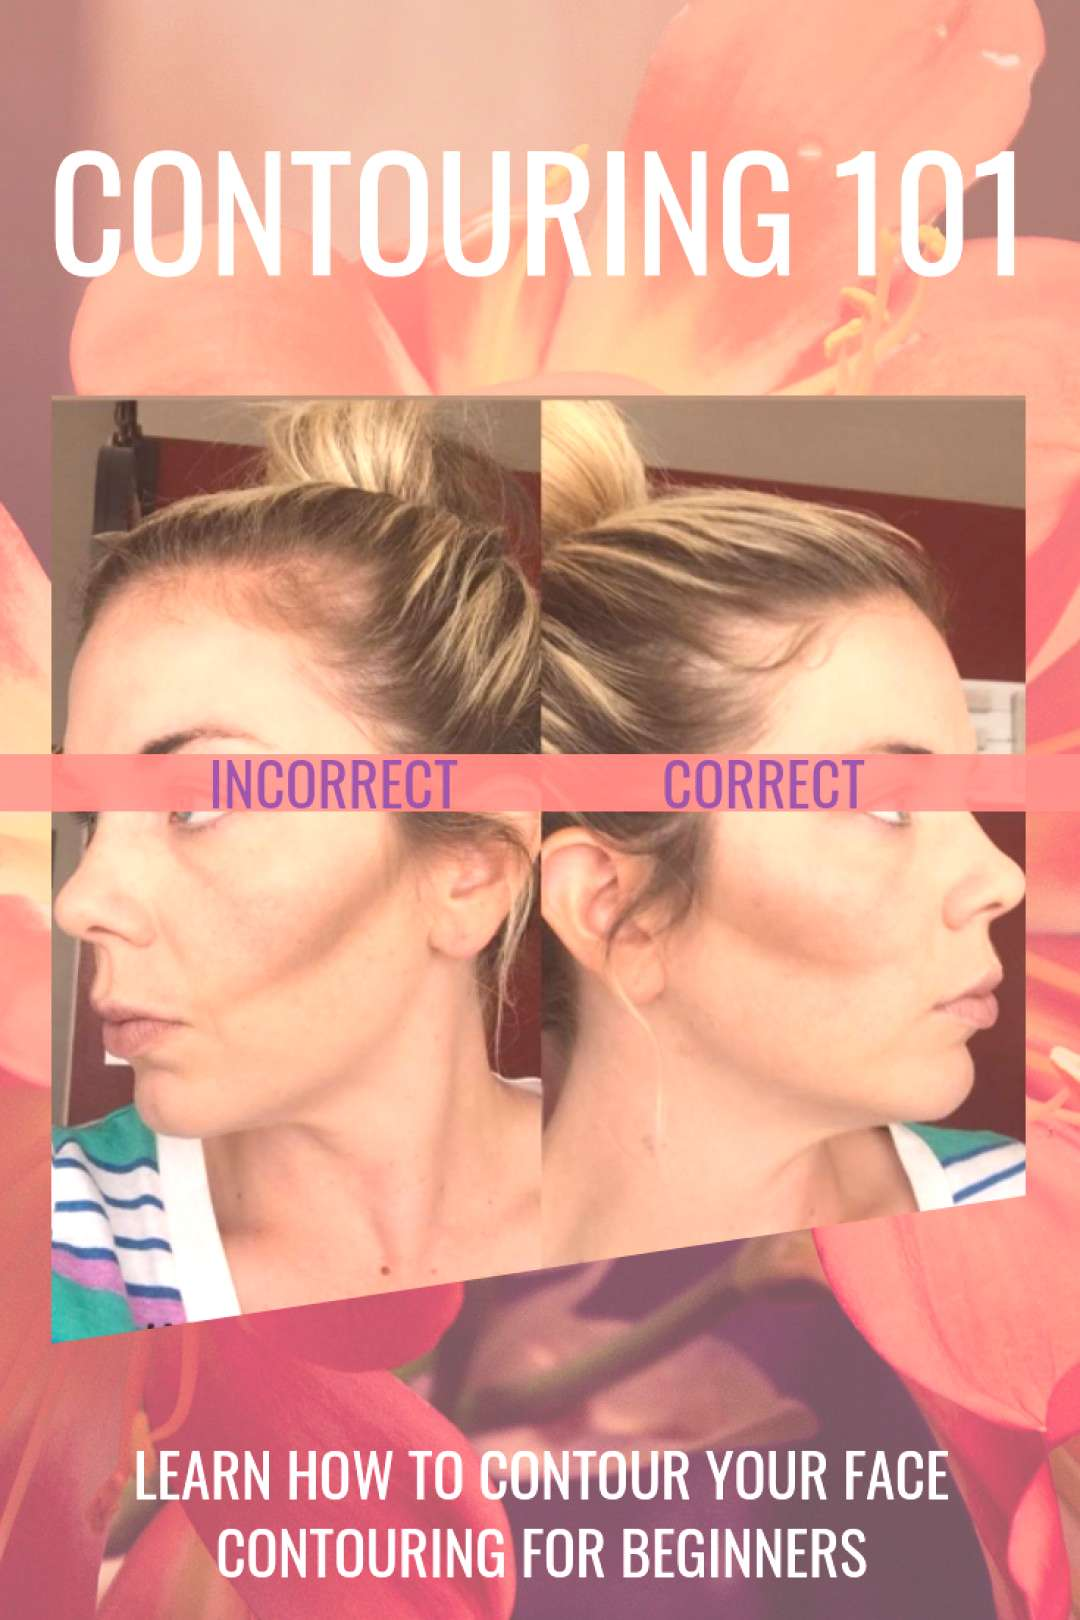 Contouring 101 - How to contour your face | Contouring for beginners - Learn how to contour your f